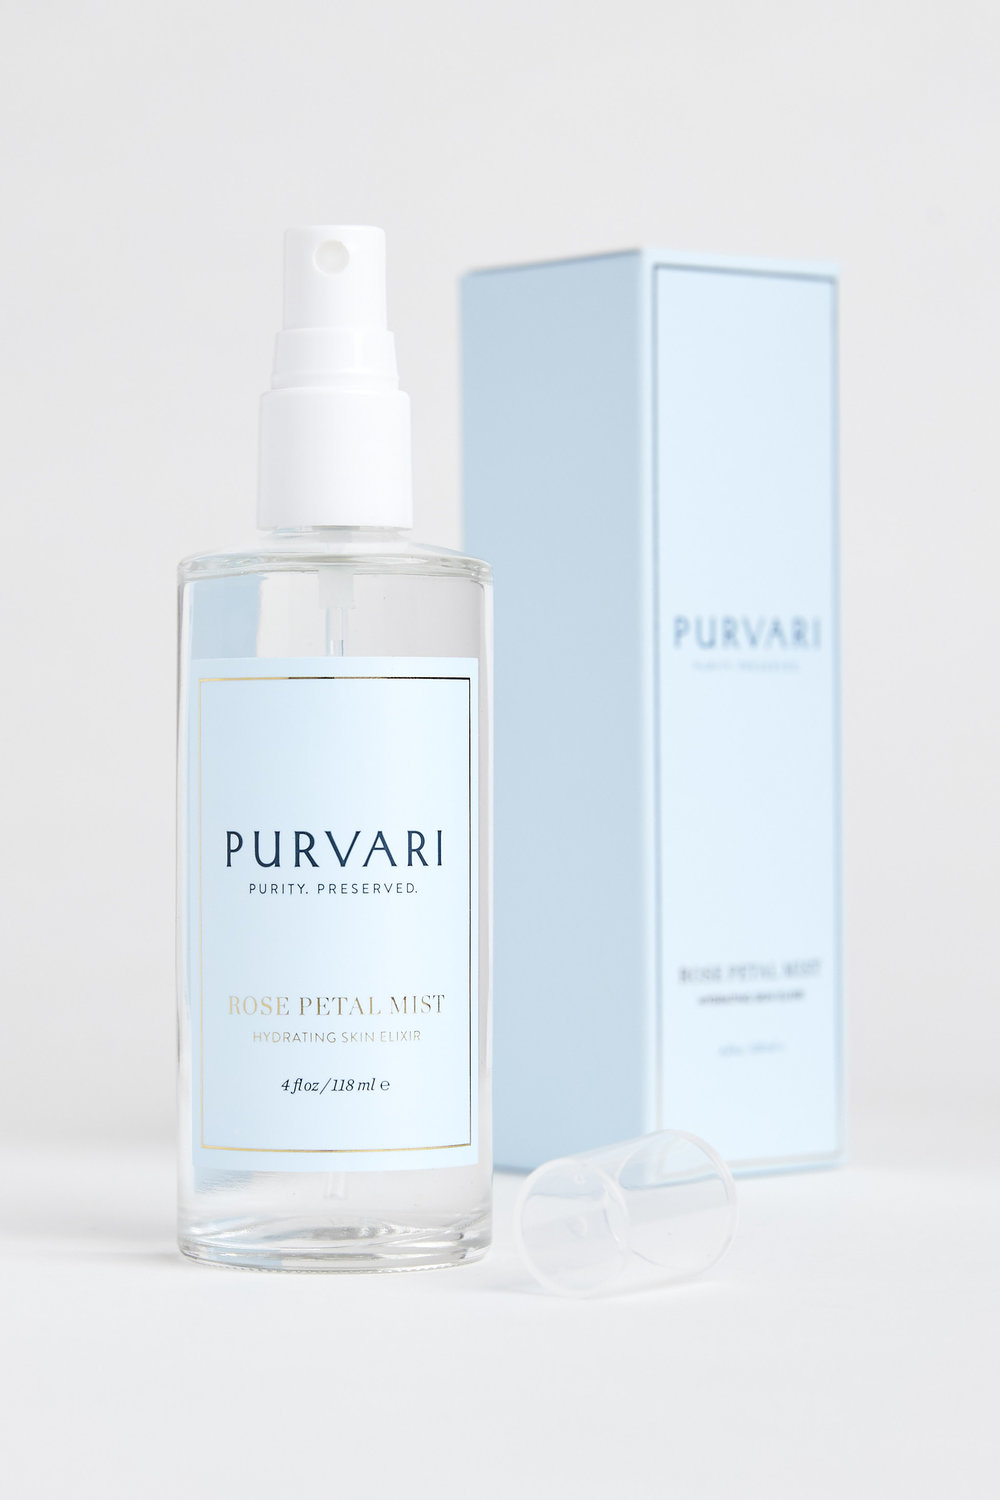 Purvari_bottle-box_softfocus.jpg